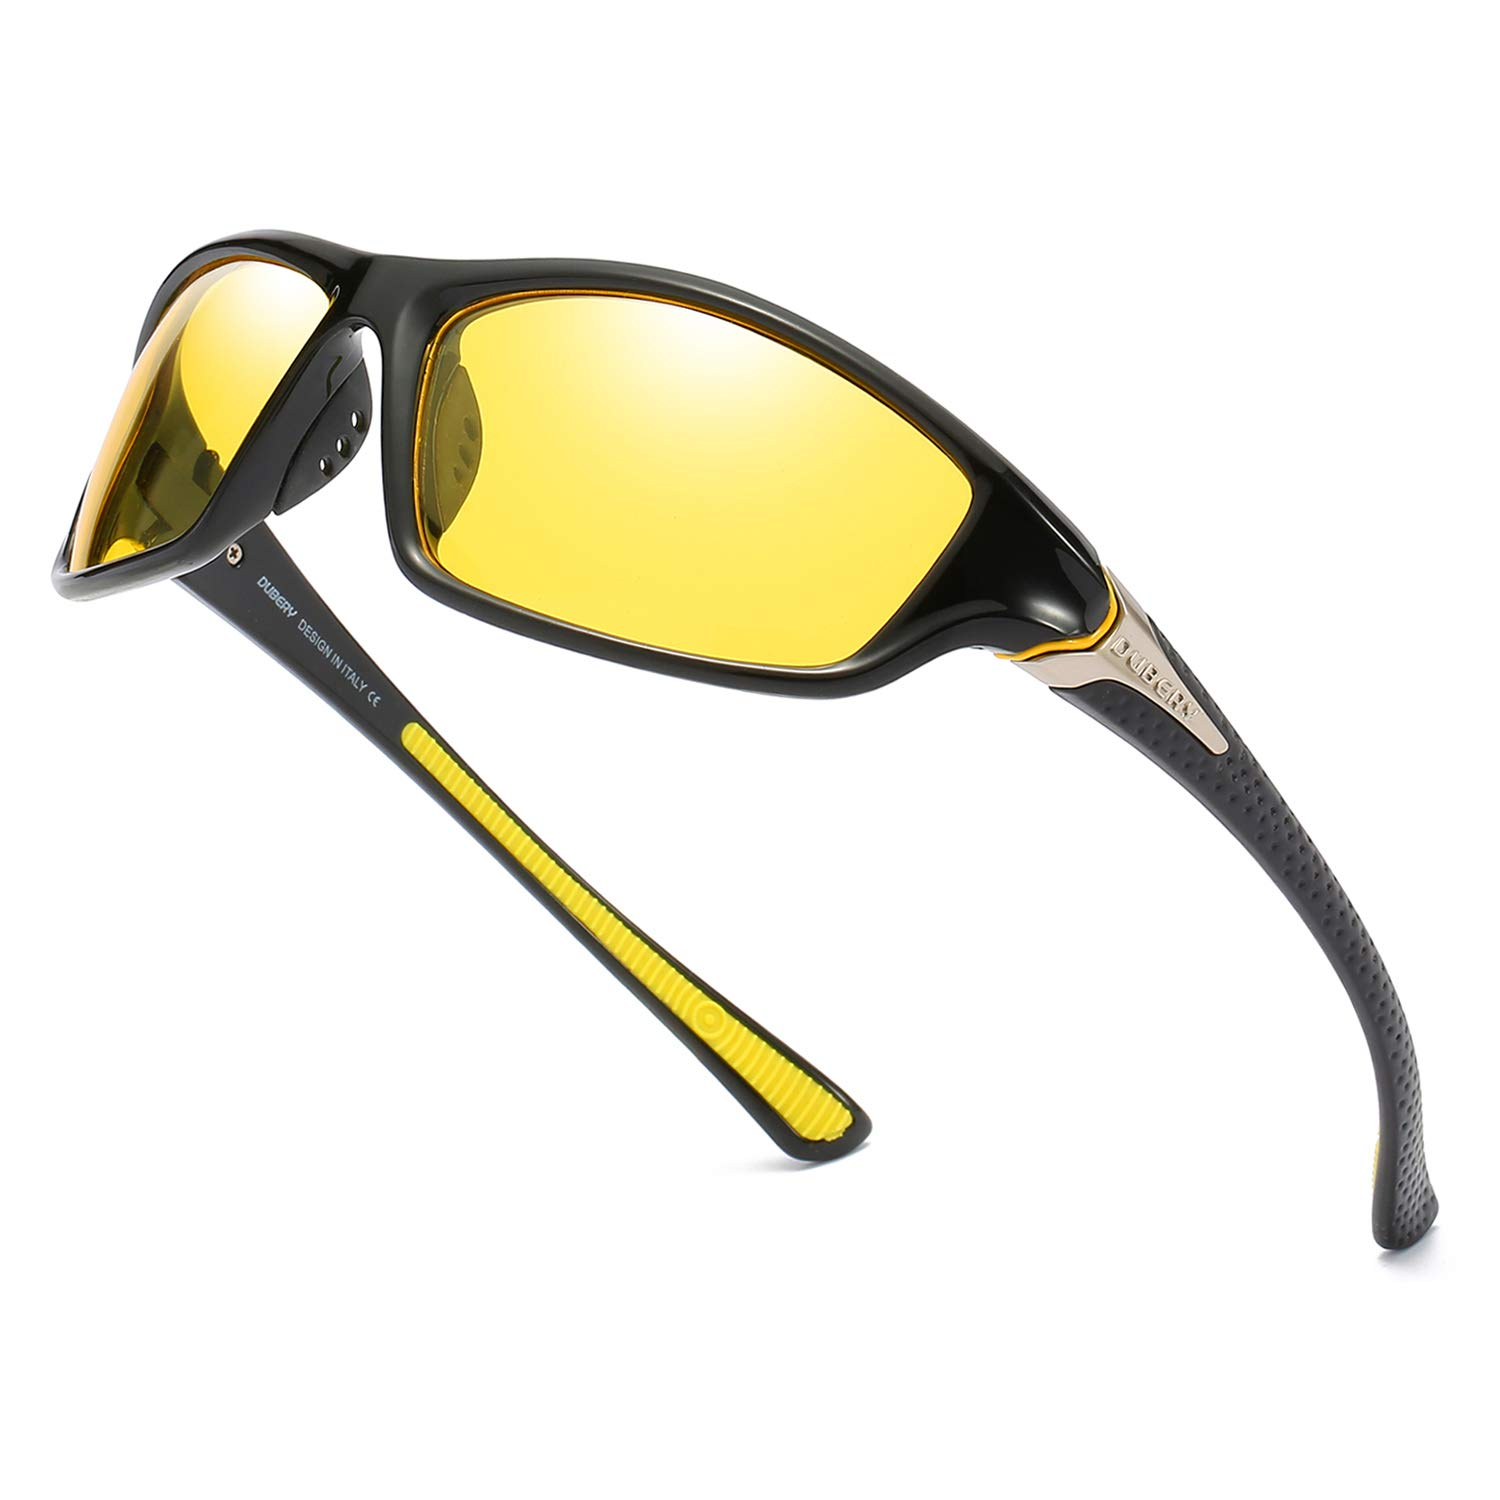 DUBERY HD Night Vision Driving Glasses for Men Women Yellow Anti Glare Glasses Ultra Lightweight Outdoor Sunglasses by DUBERY